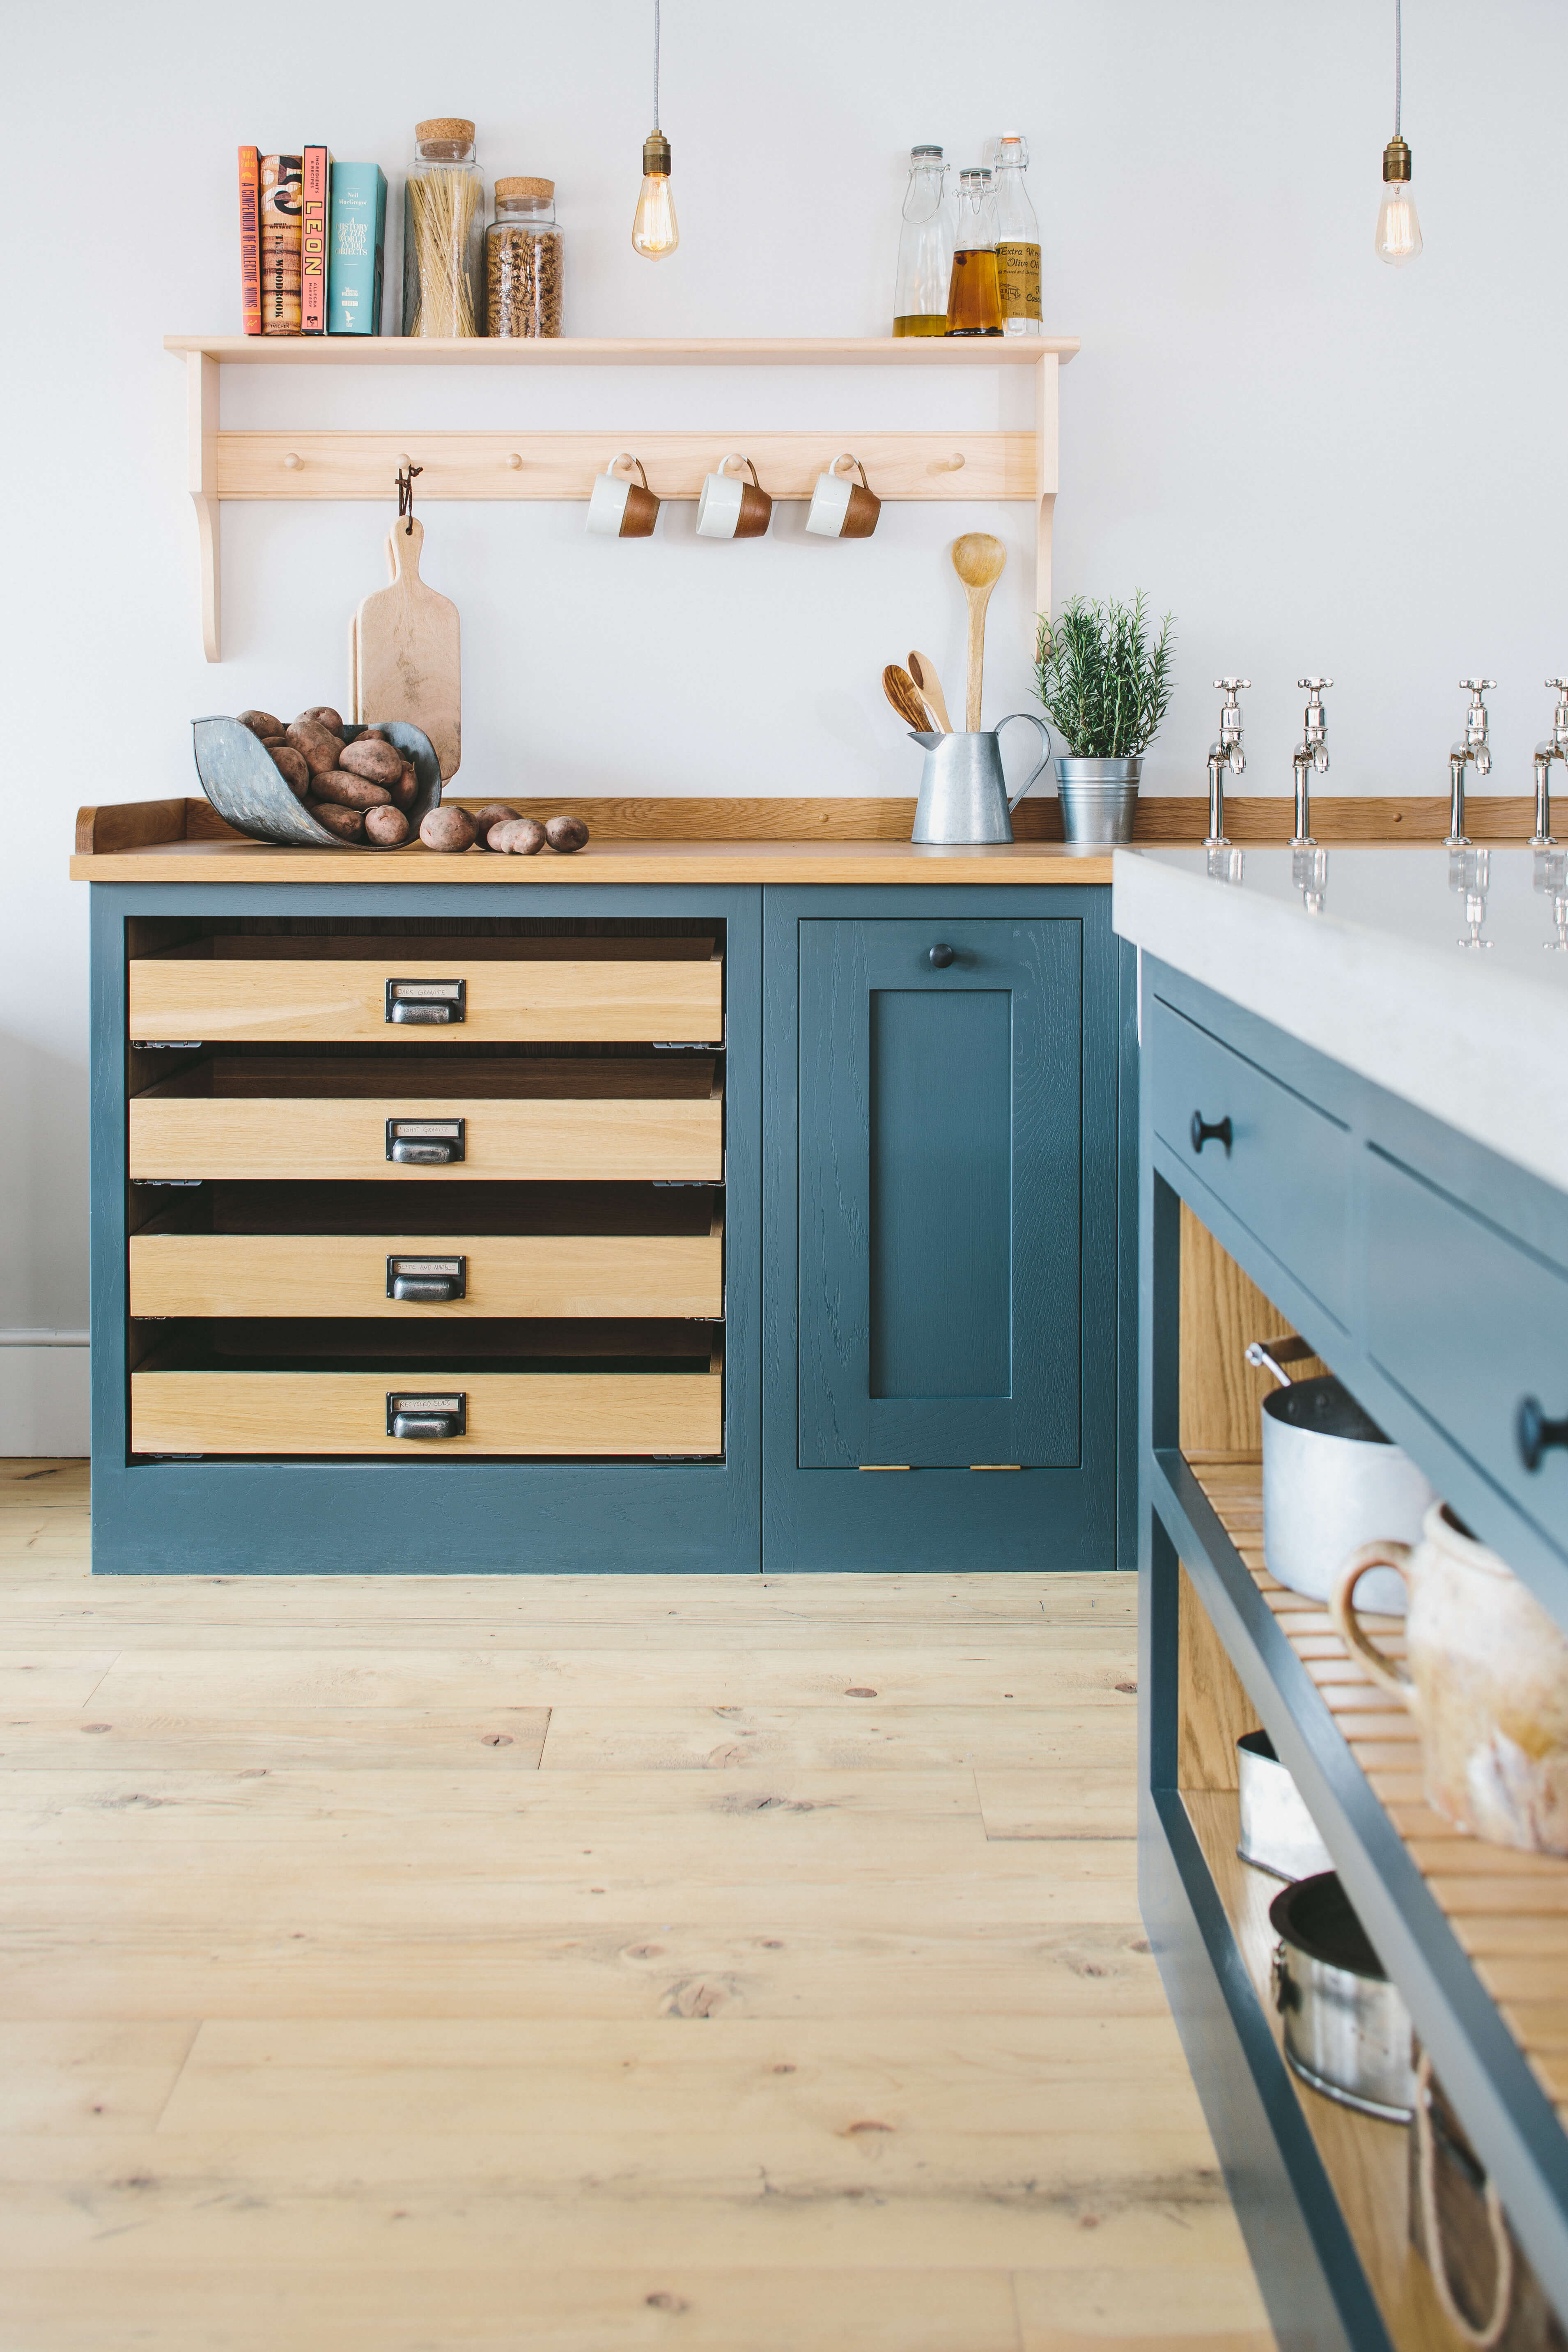 Sustainable Kitchens Showroom with Shaker shelves and Oak worktop